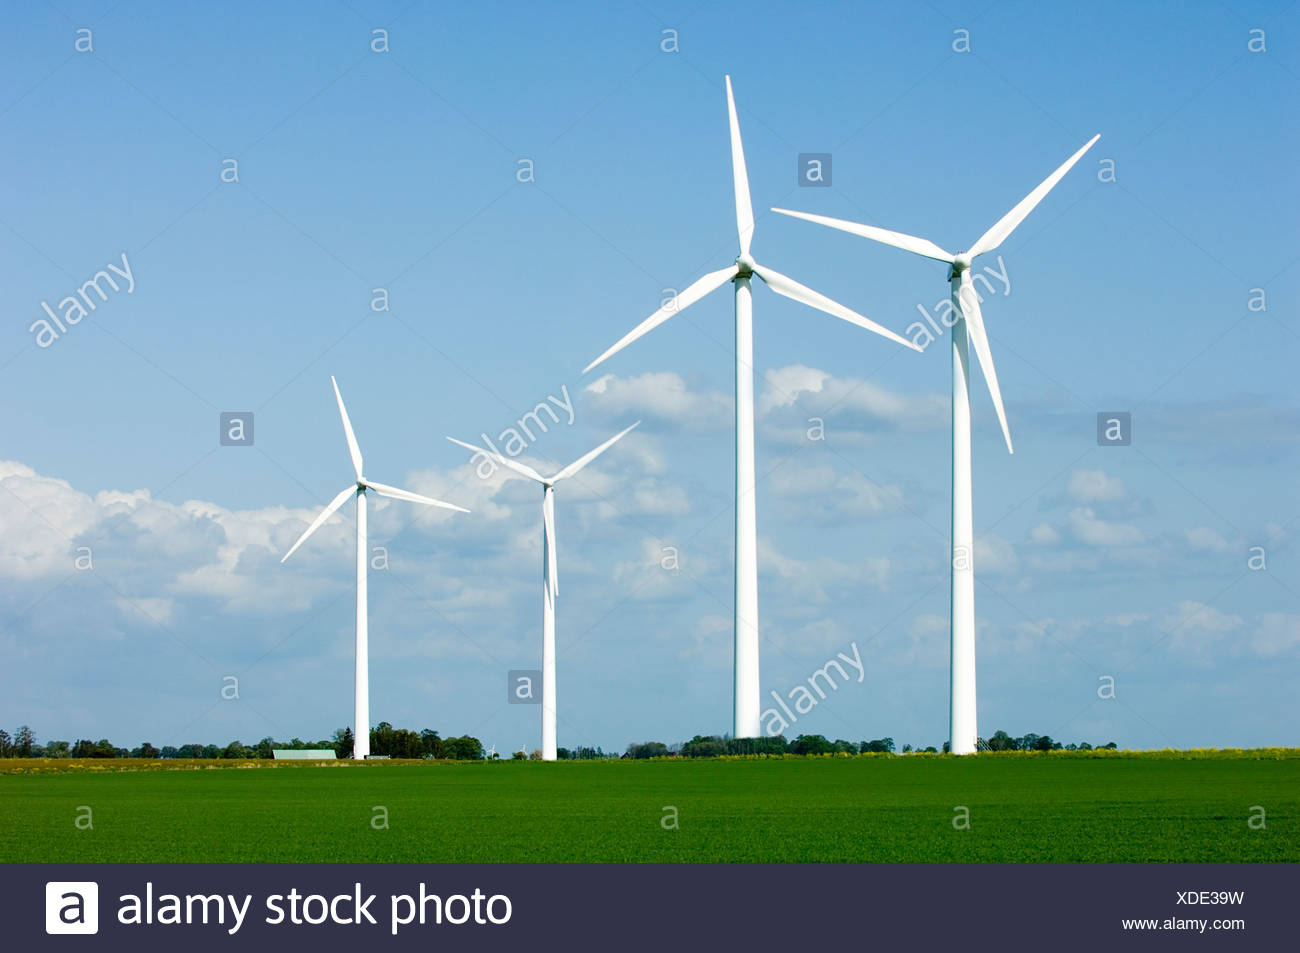 View of four wind turbines on a calm and peaceful landscape against blue sky - Stock Image